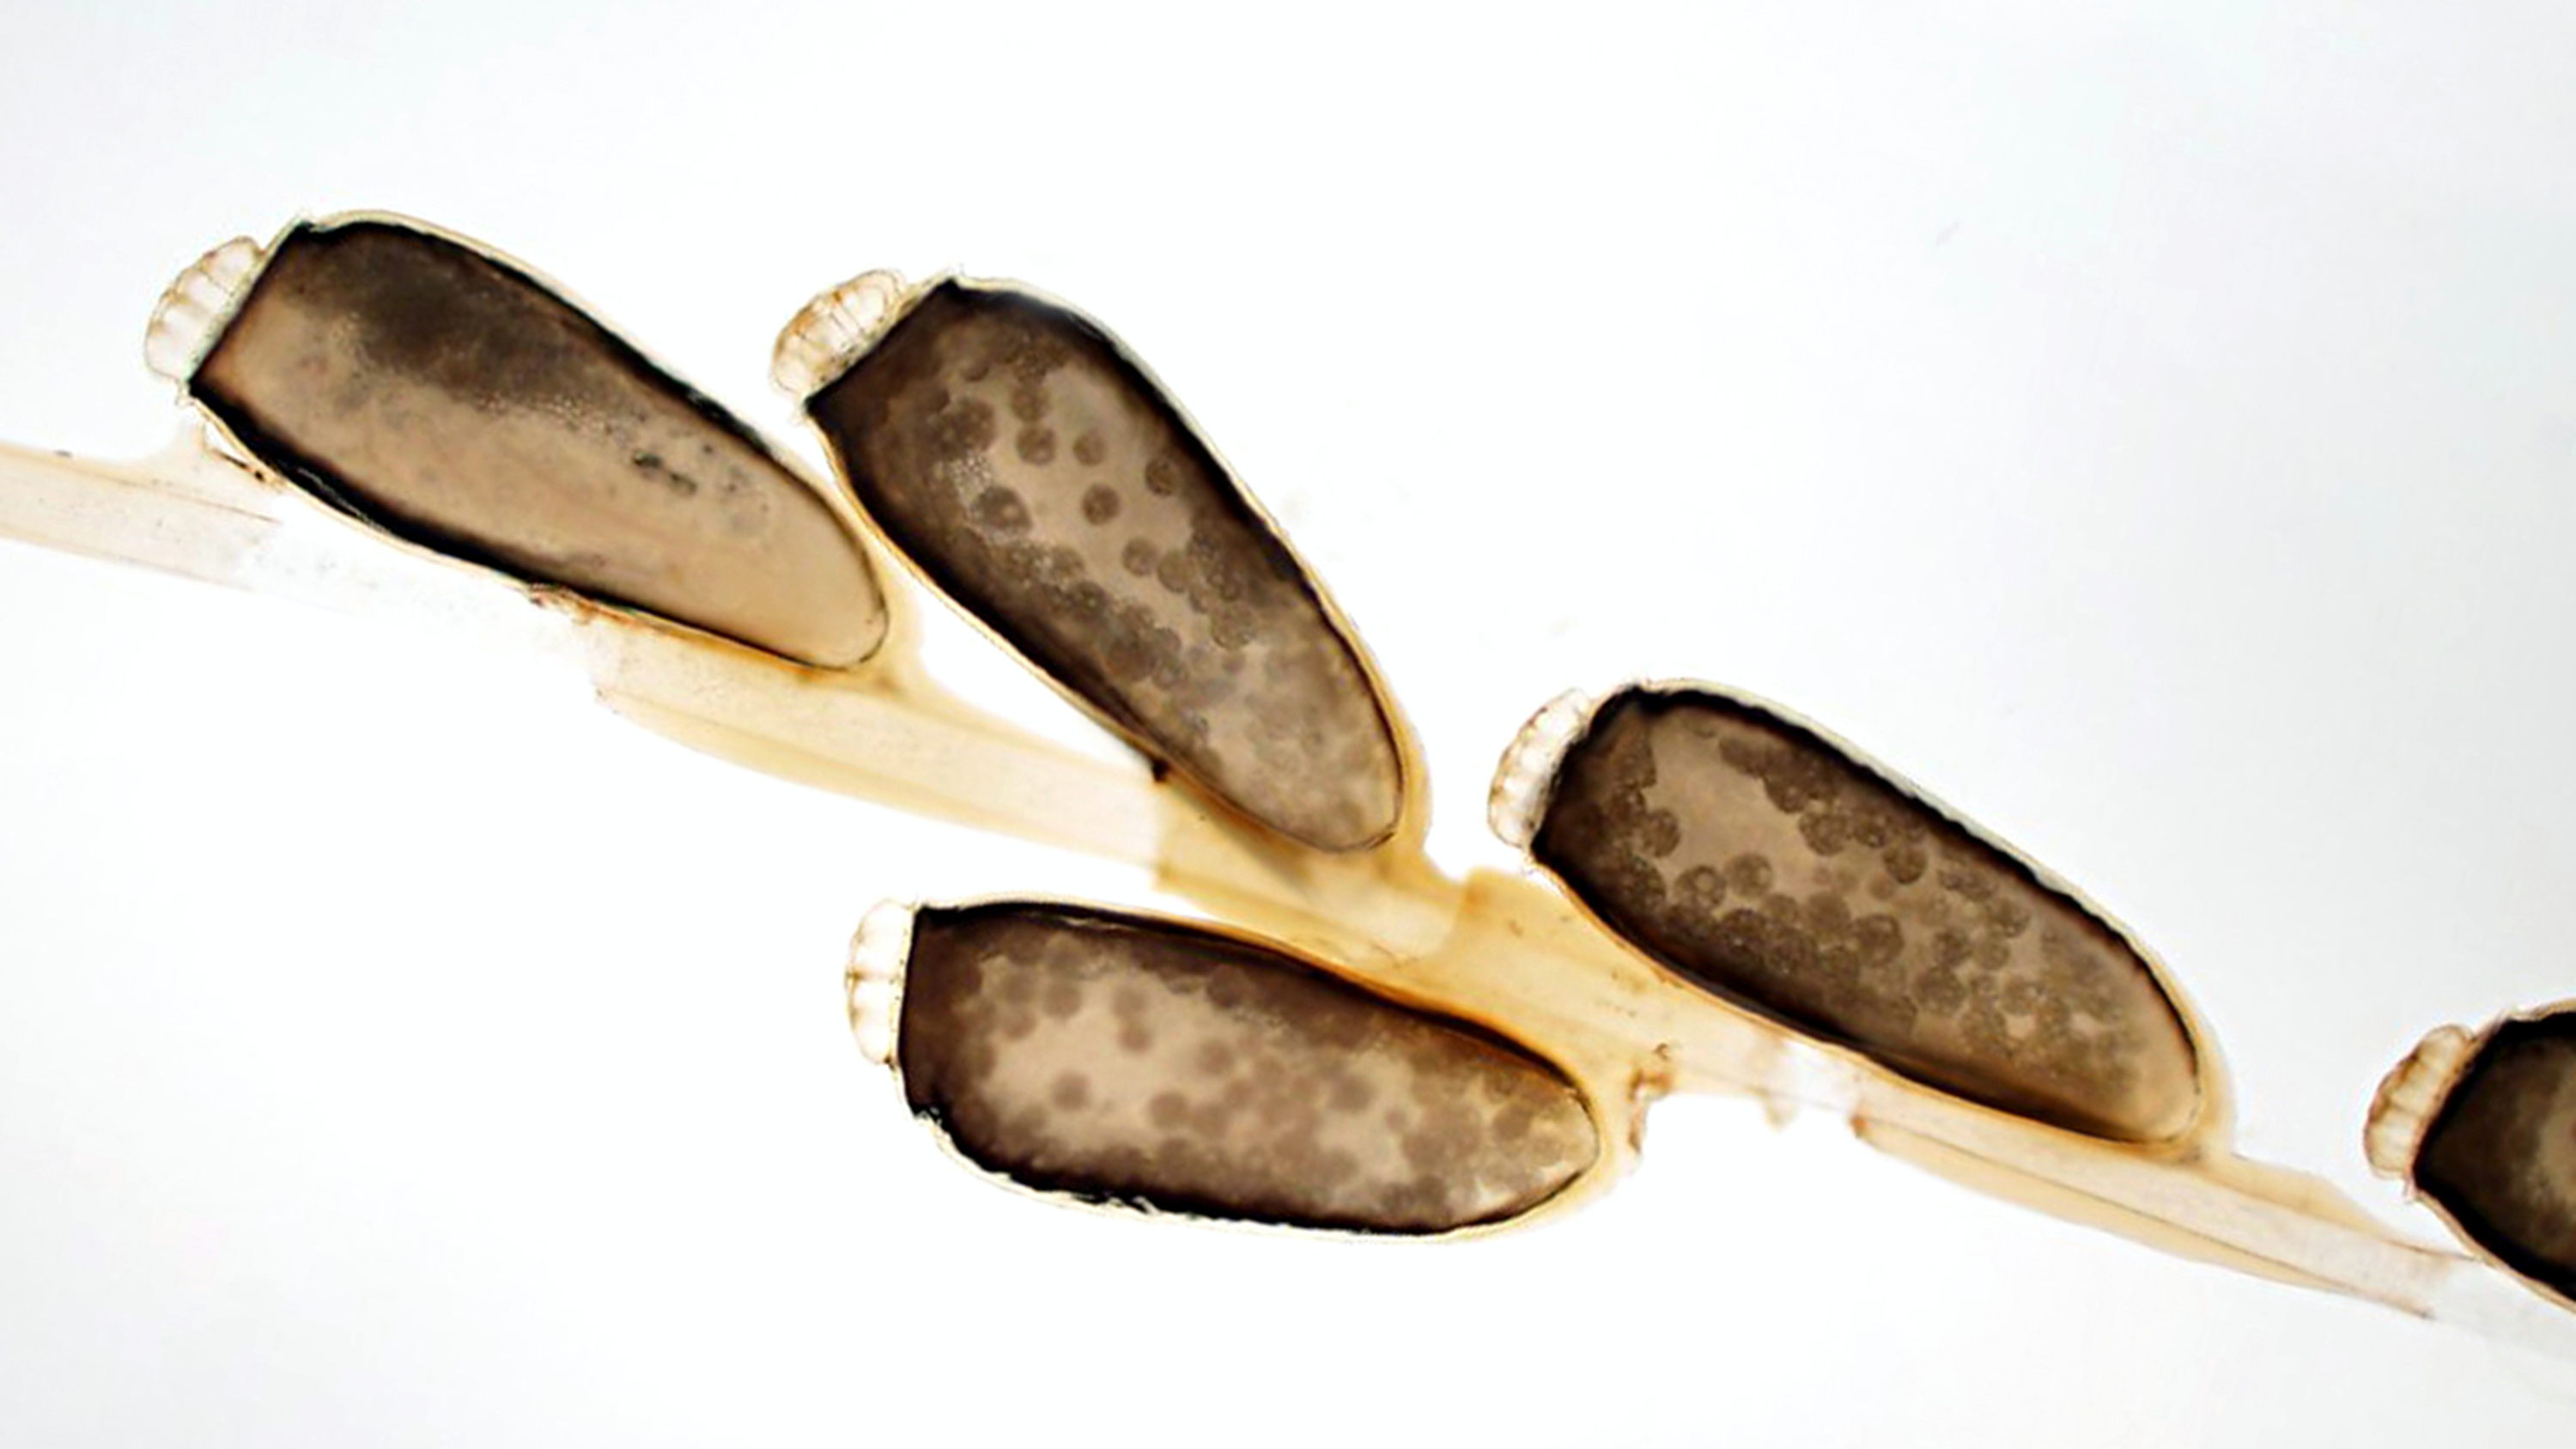 microscopic view of lice eggs on a strand of hair